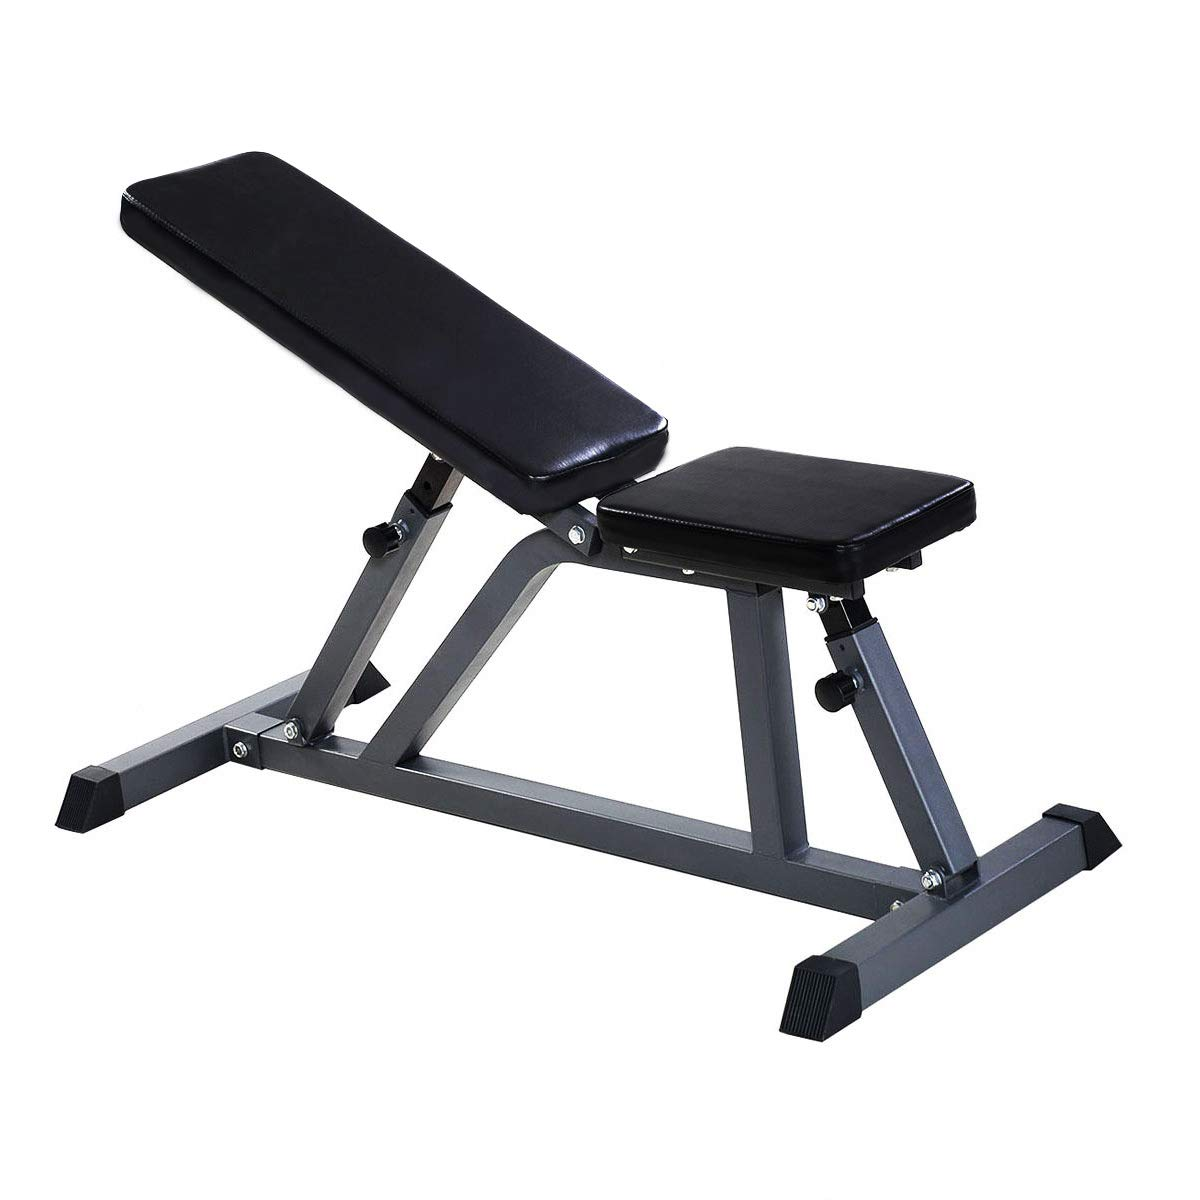 Goplus Sit Up Bench Adjustable Workout Utility AB Incline Flat Weight Bench 8-Position 440-lb Capacity (Upgraded Dense Pad Xmas New)